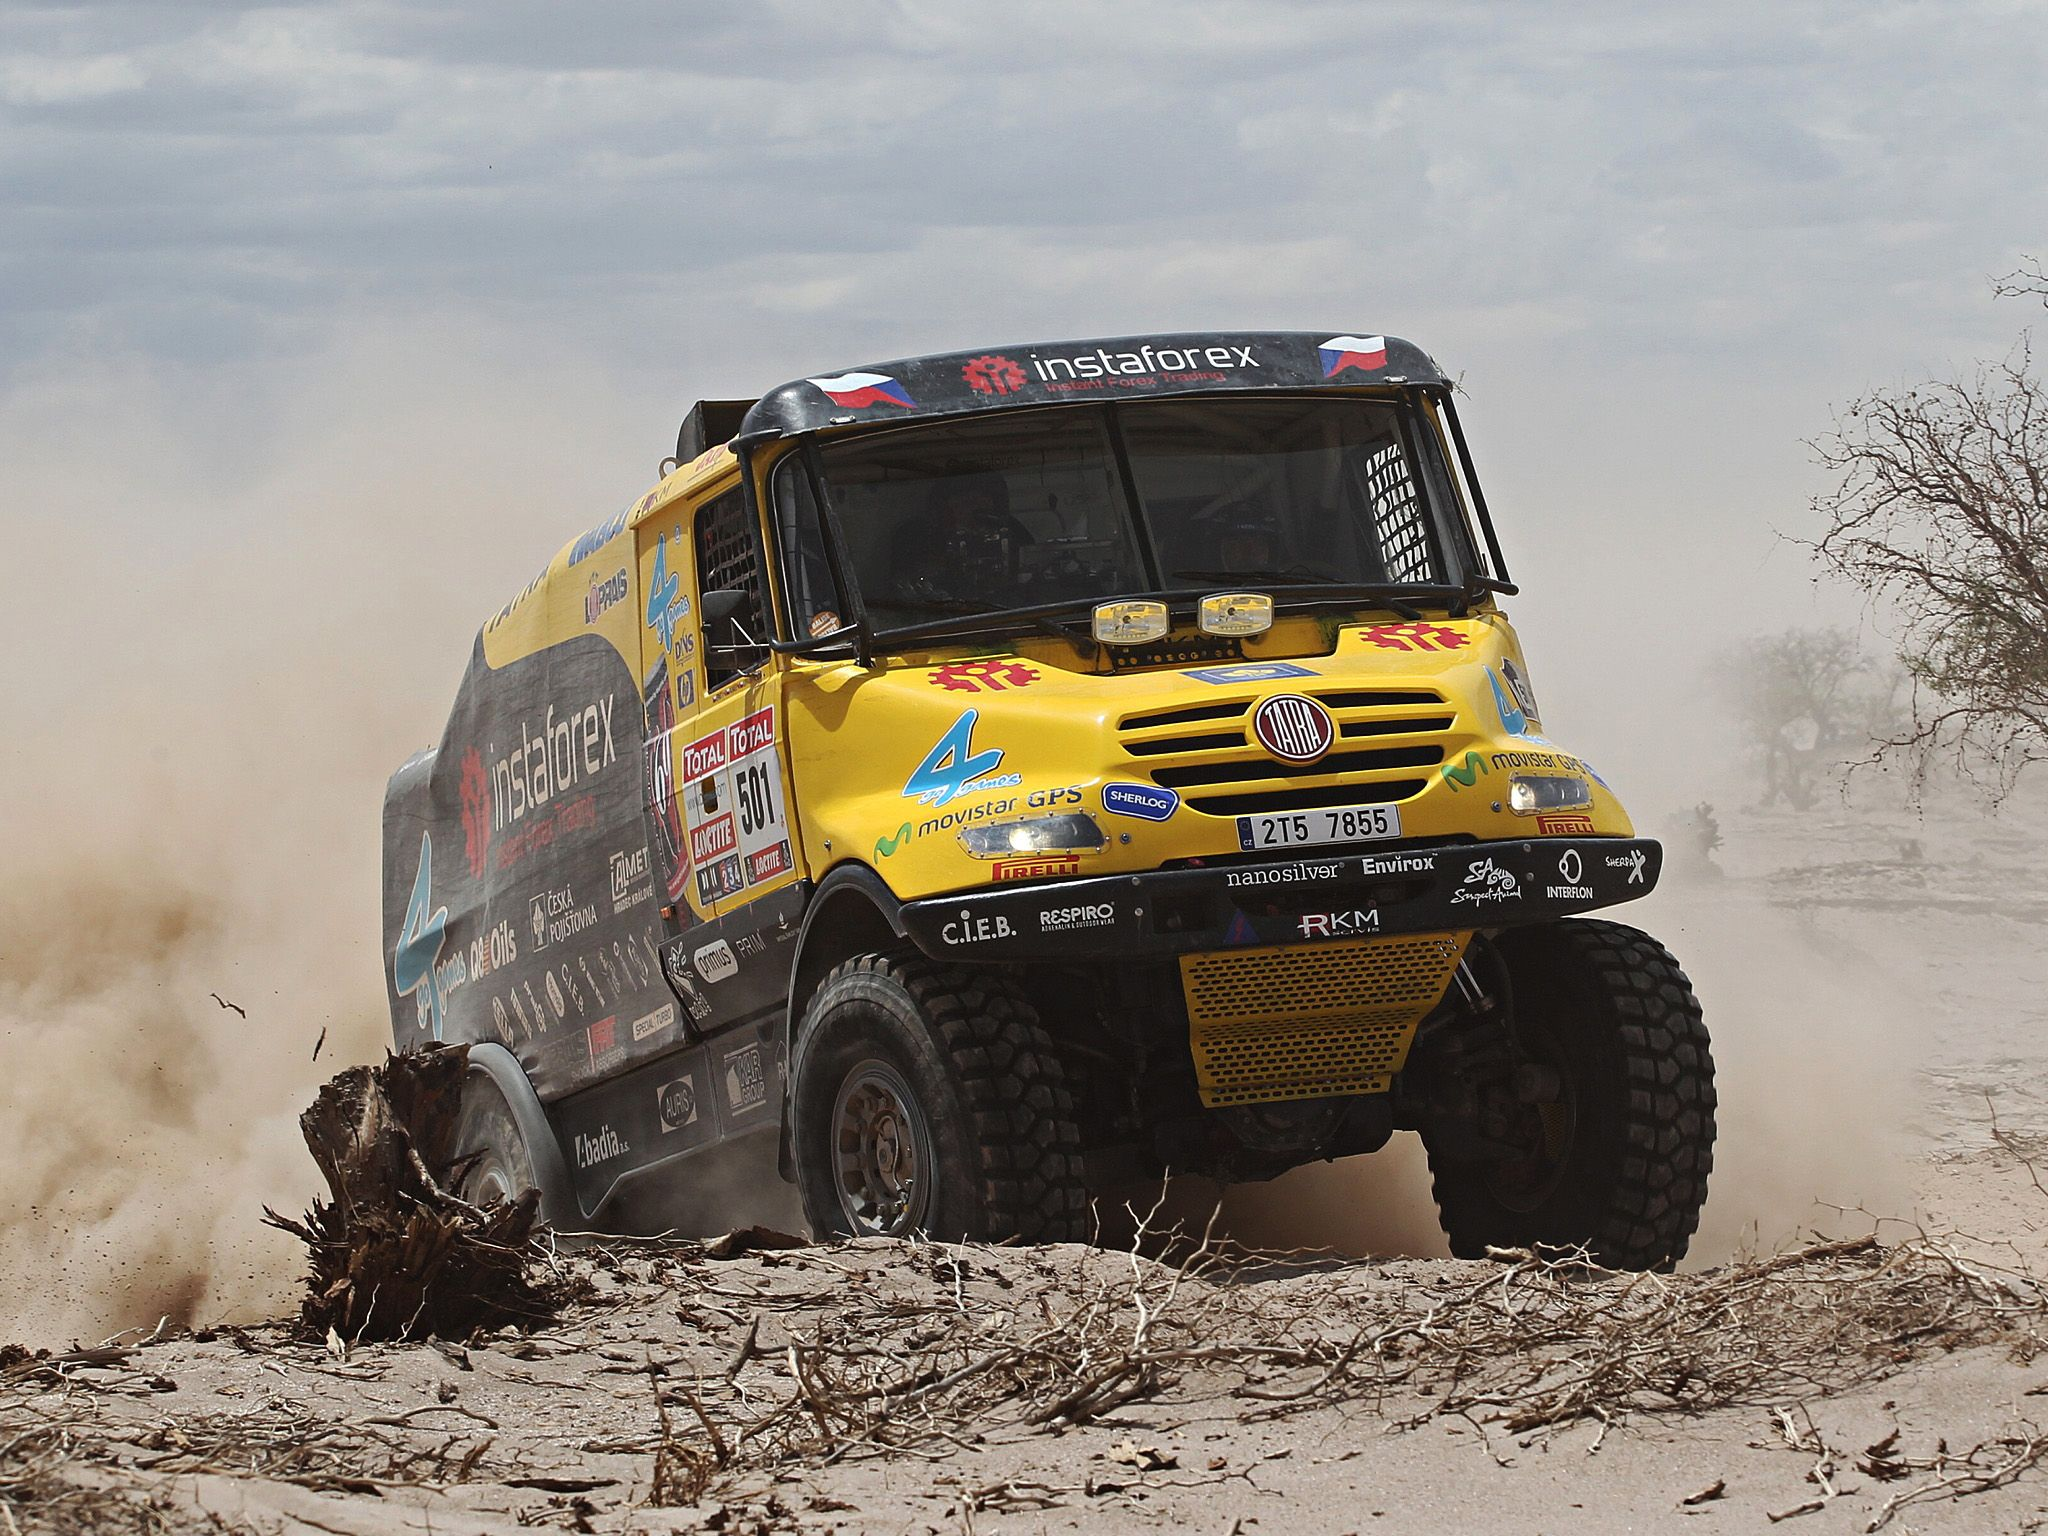 2011 Tatra Yamal Rally Truck offroad 4x4 race racing gg wallpaper ...